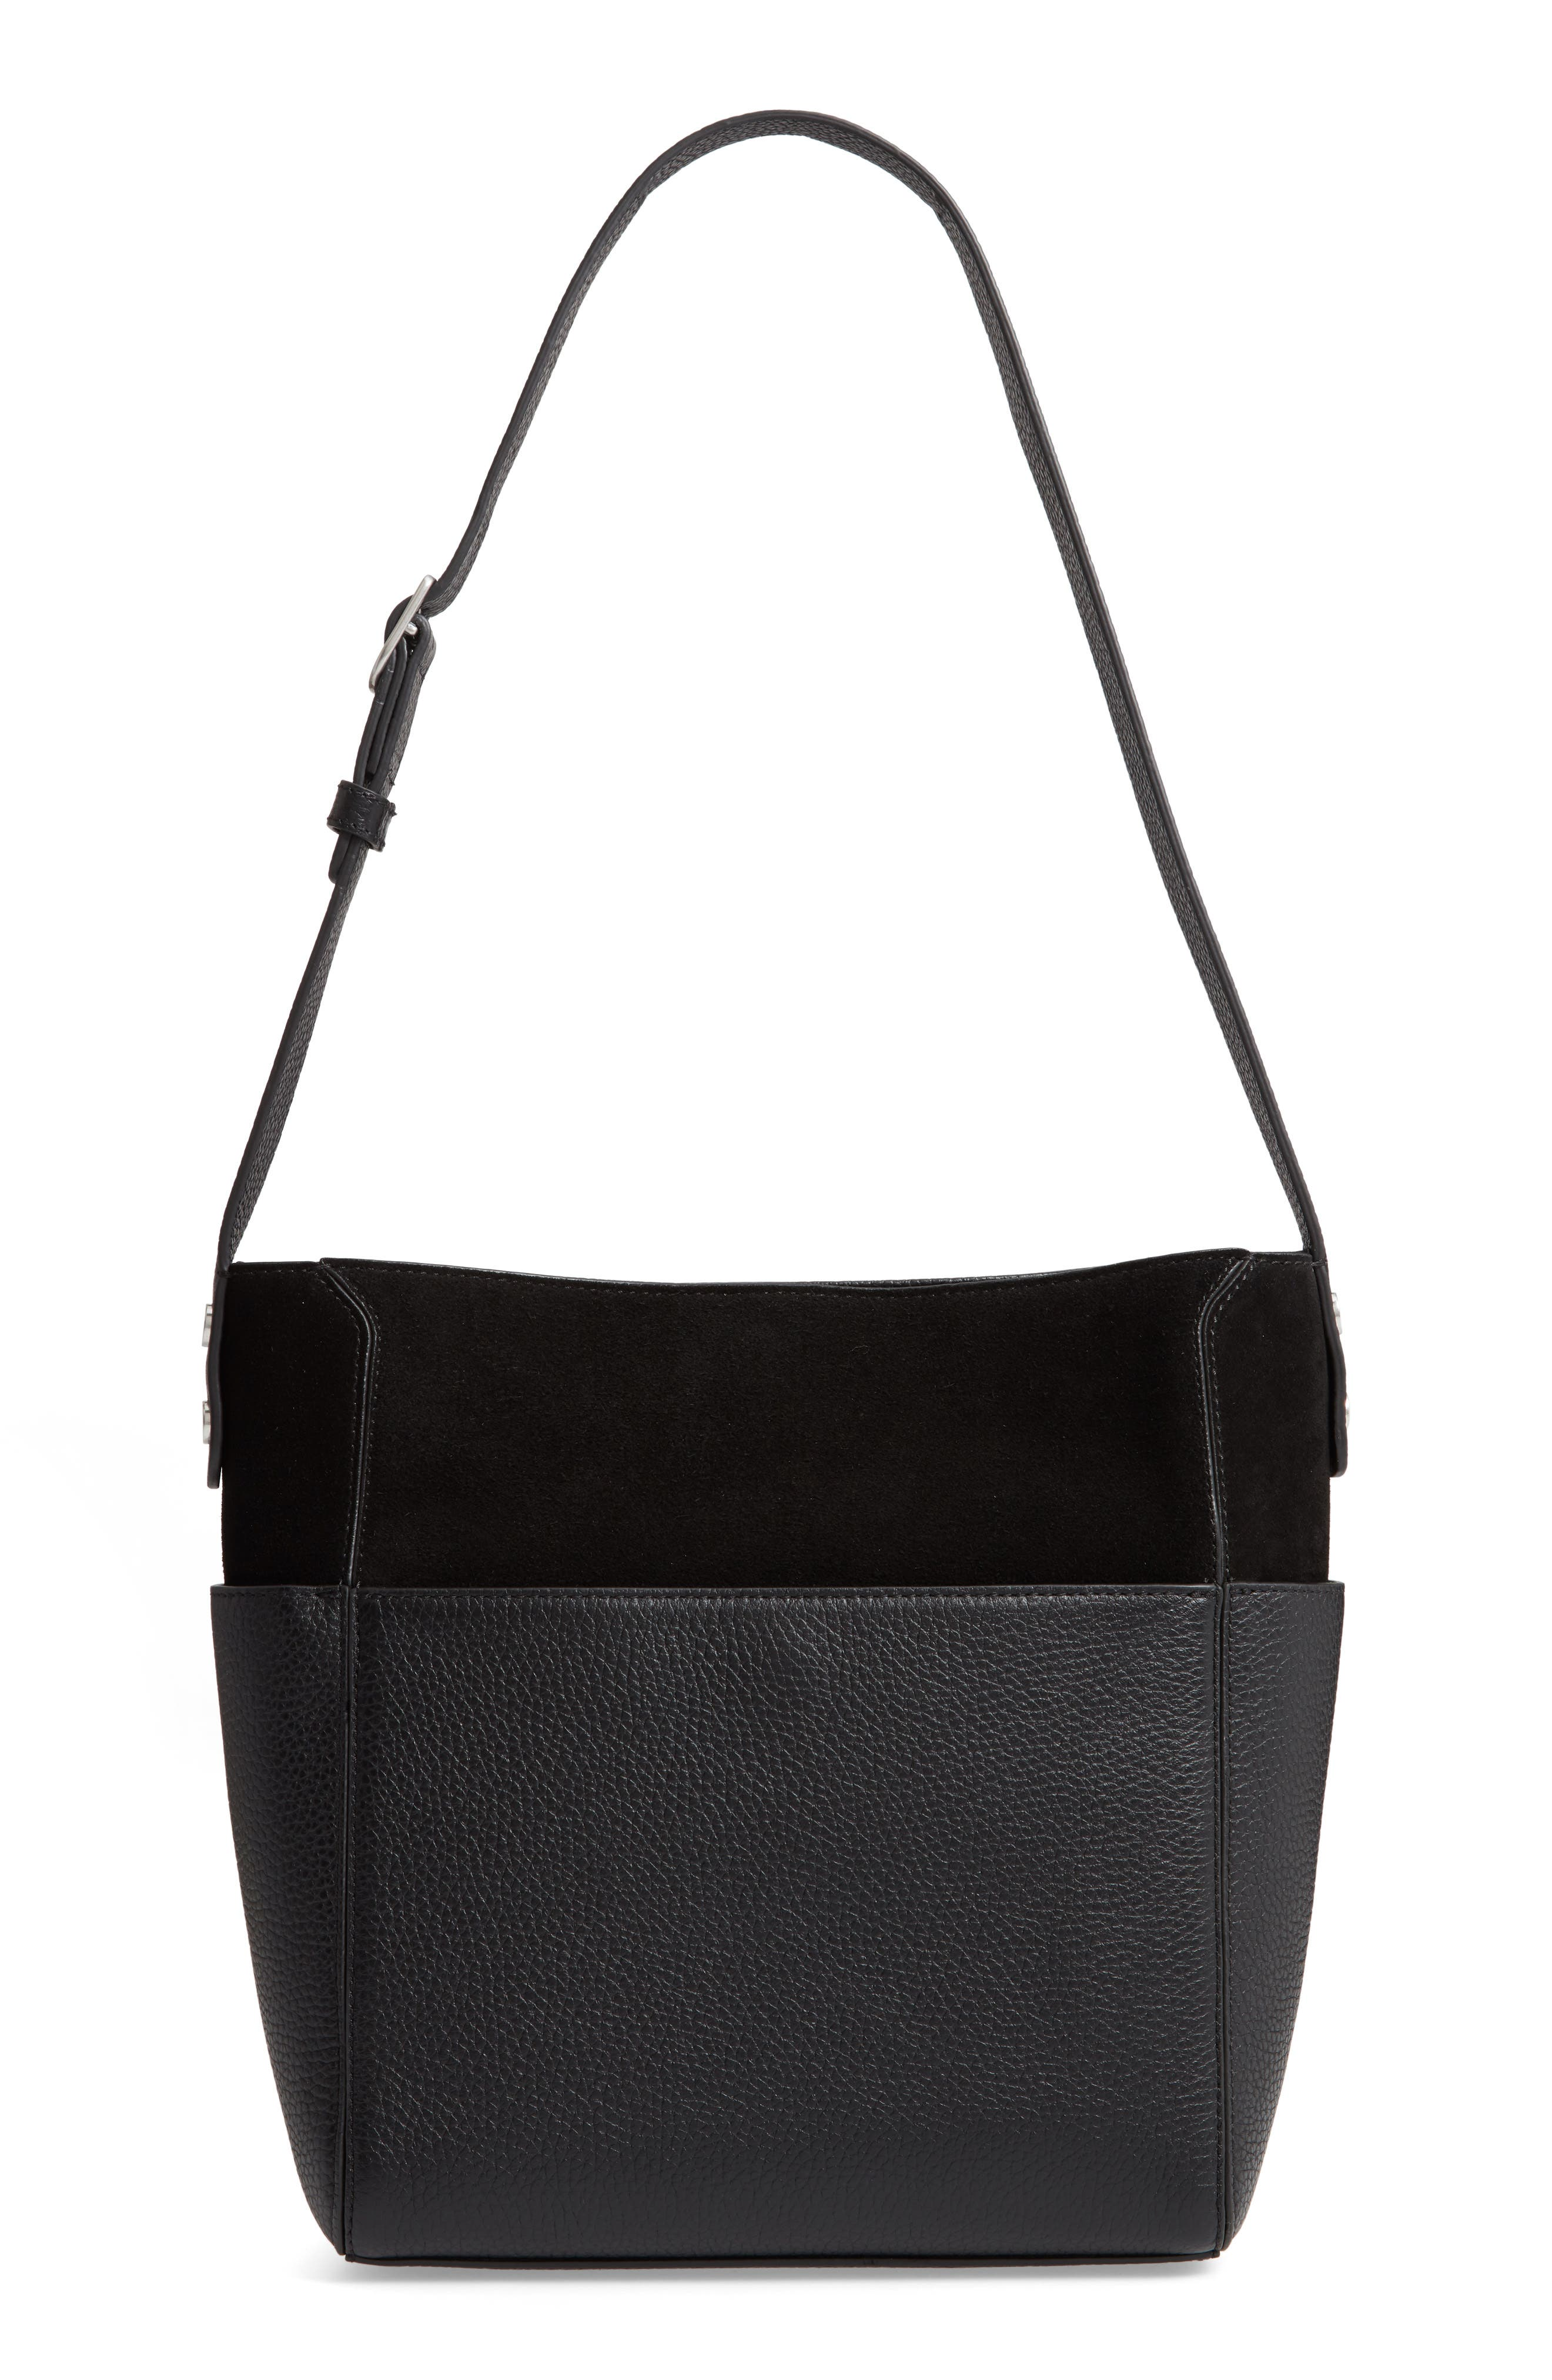 Campbell Leather & Suede Bucket Bag,                             Main thumbnail 1, color,                             BLACK